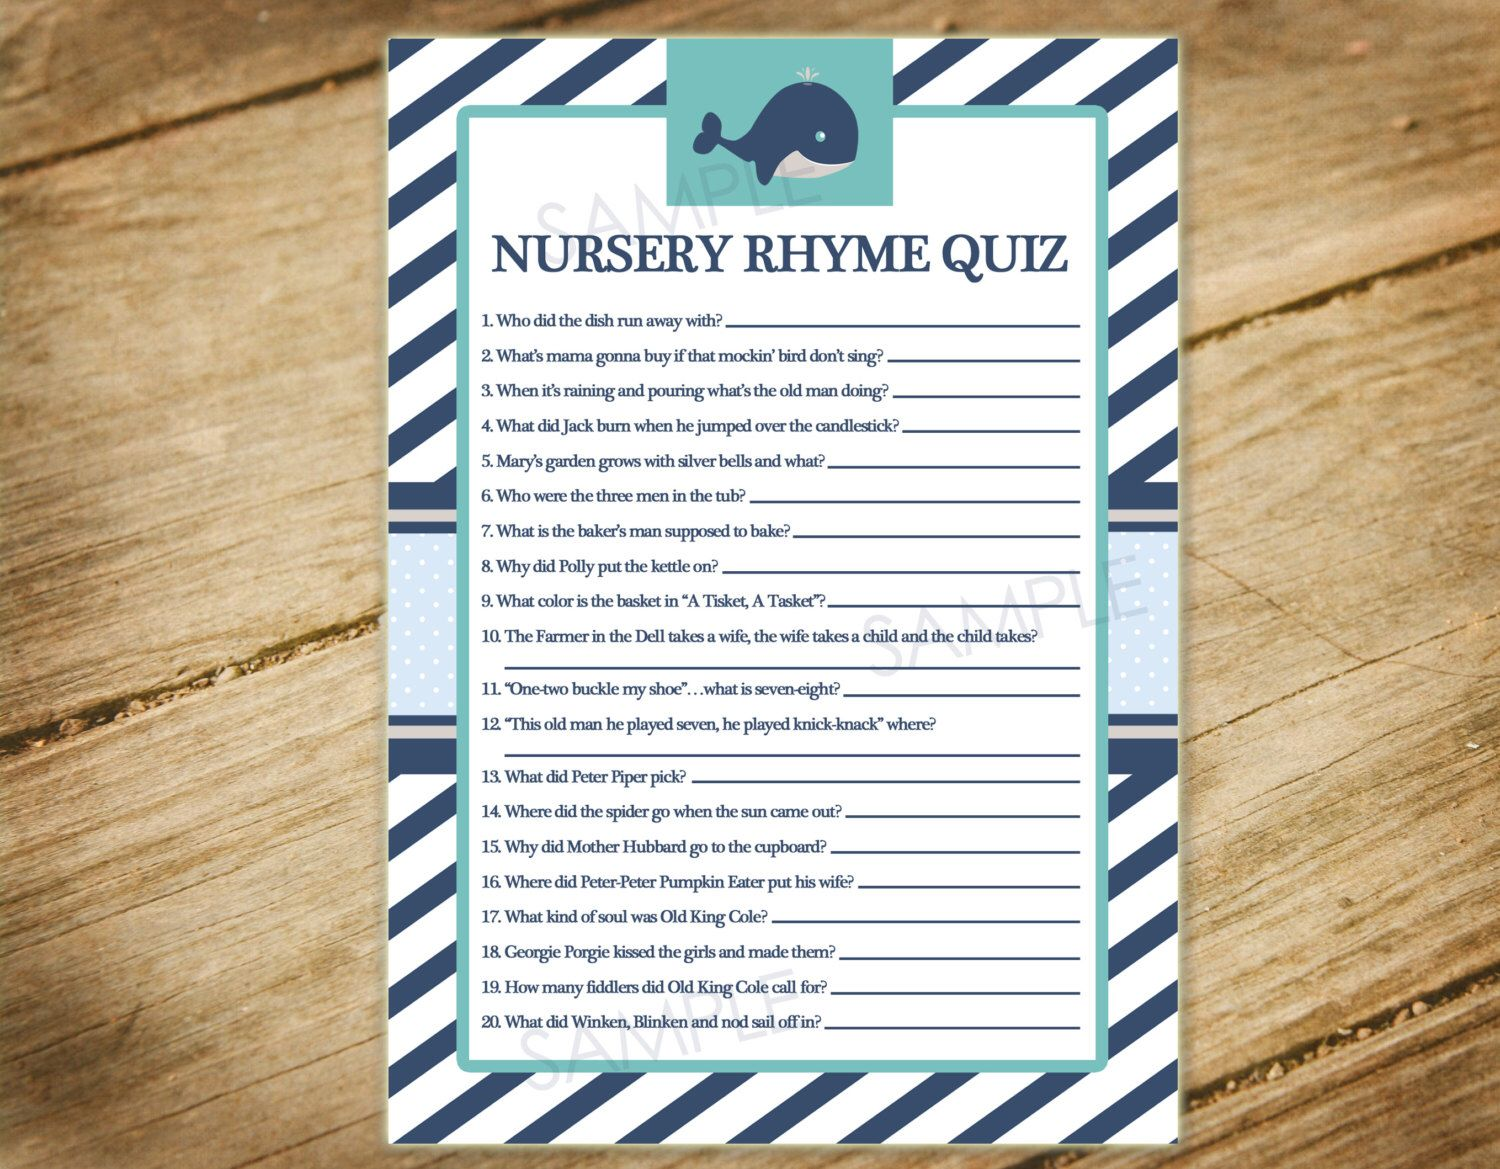 Little Squirt / Whale / Nautical Theme Matching Baby Shower Game - Nursery Rhyme Quiz - Printable Instant Download by PocketfulOStationery on Etsy https://www.etsy.com/listing/225950863/little-squirt-whale-nautical-theme